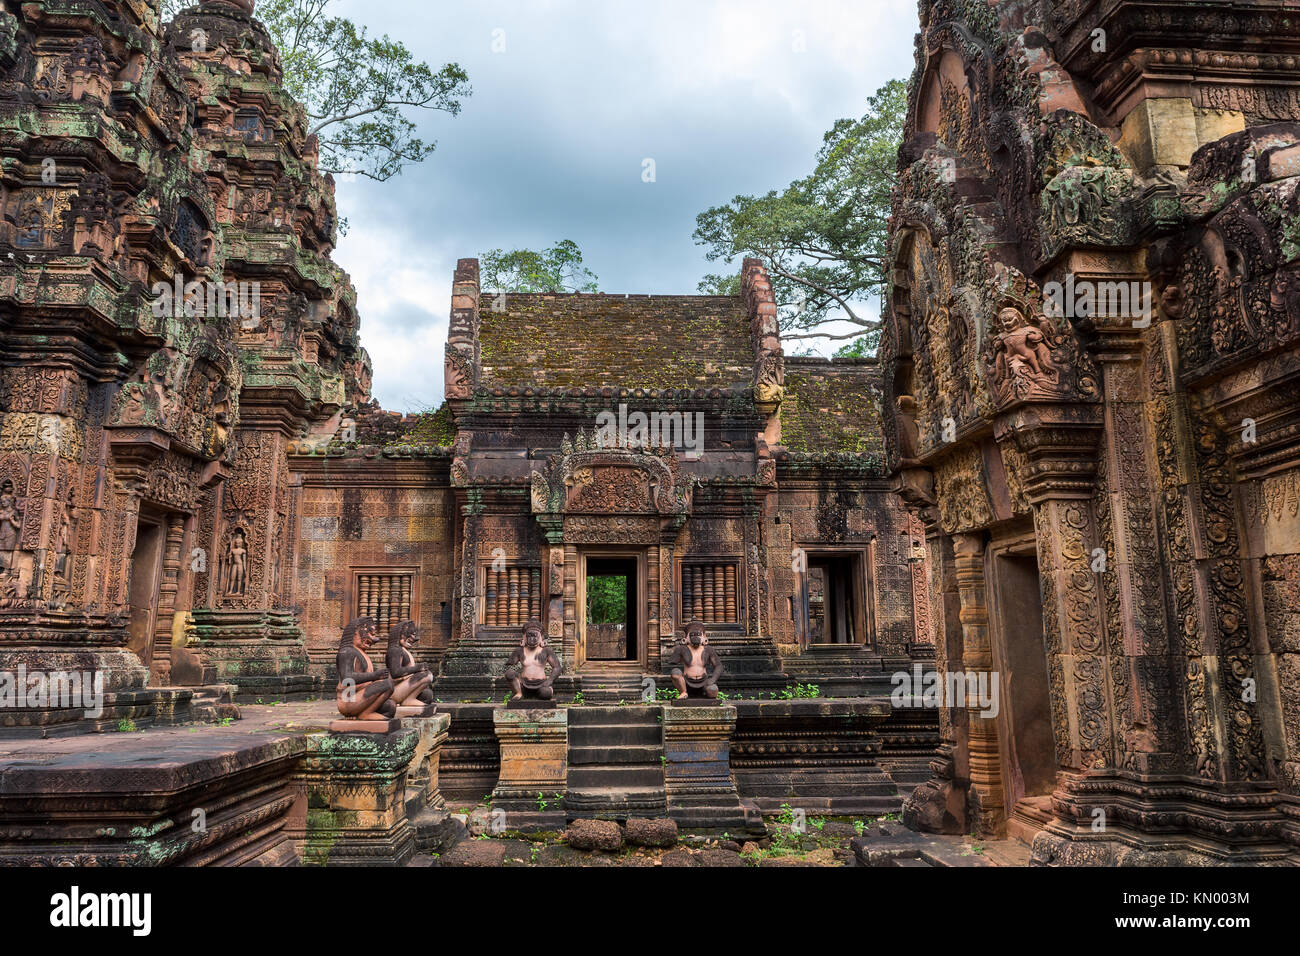 A view of Banteay Srei temple, famous for its wall carvings, situated near Siem Reap, Cambodia. - Stock Image